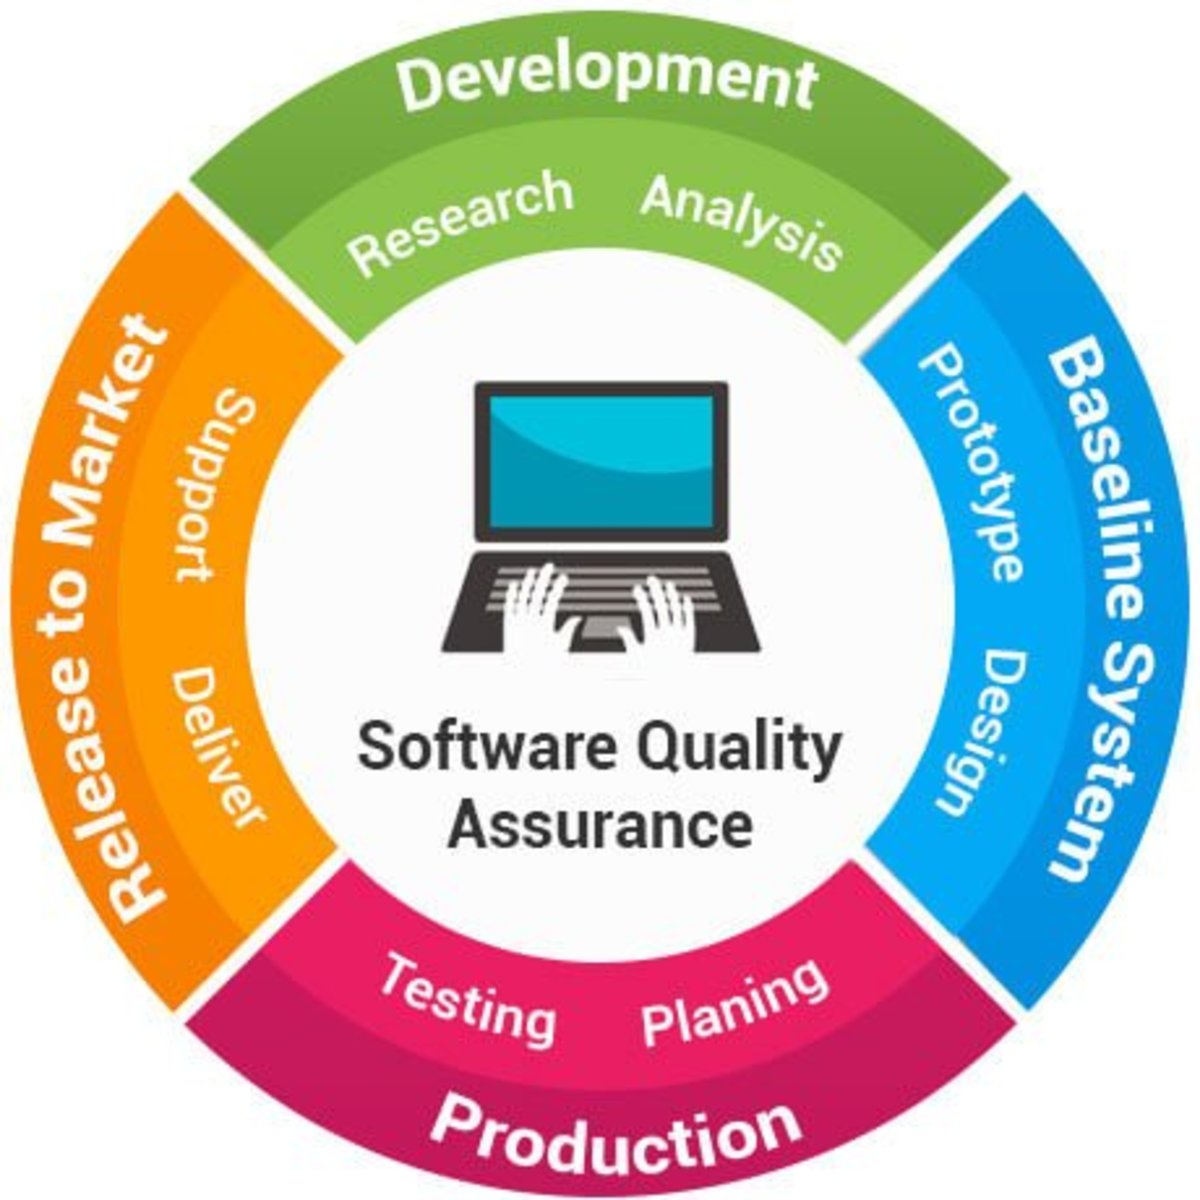 Steps for Quality Assurance